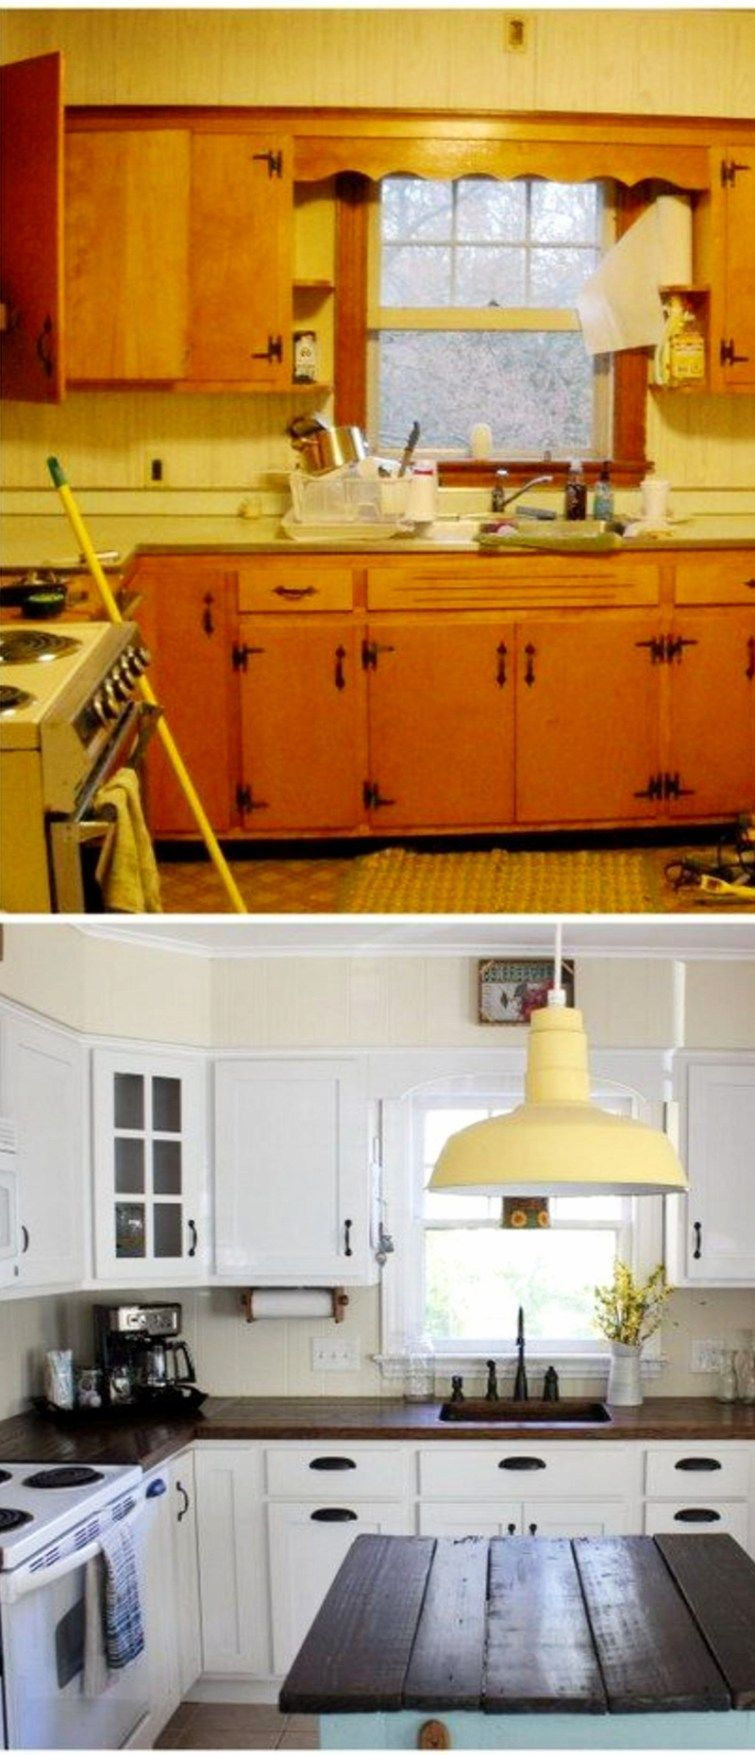 Small Kitchen Makeovers Before And After Small Kitchens Remodel Ideas And Pictures Kitche Kitchen Remodel Small Kitchen Design Small Small Kitchen Makeovers